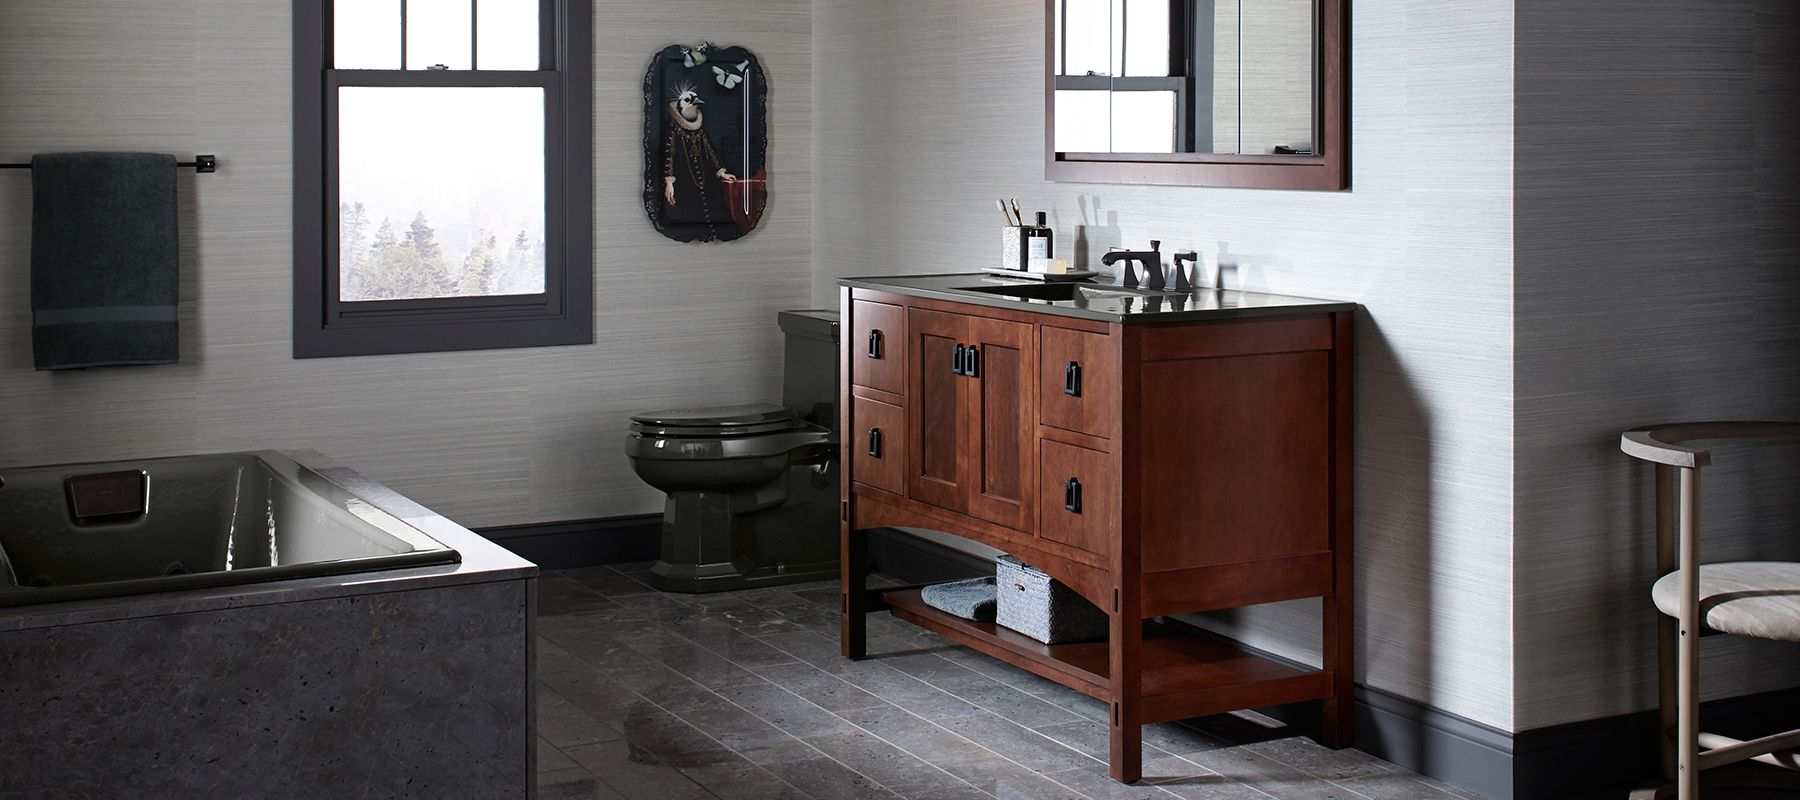 bathroom storage styling ideas - Small Bathroom Sinks